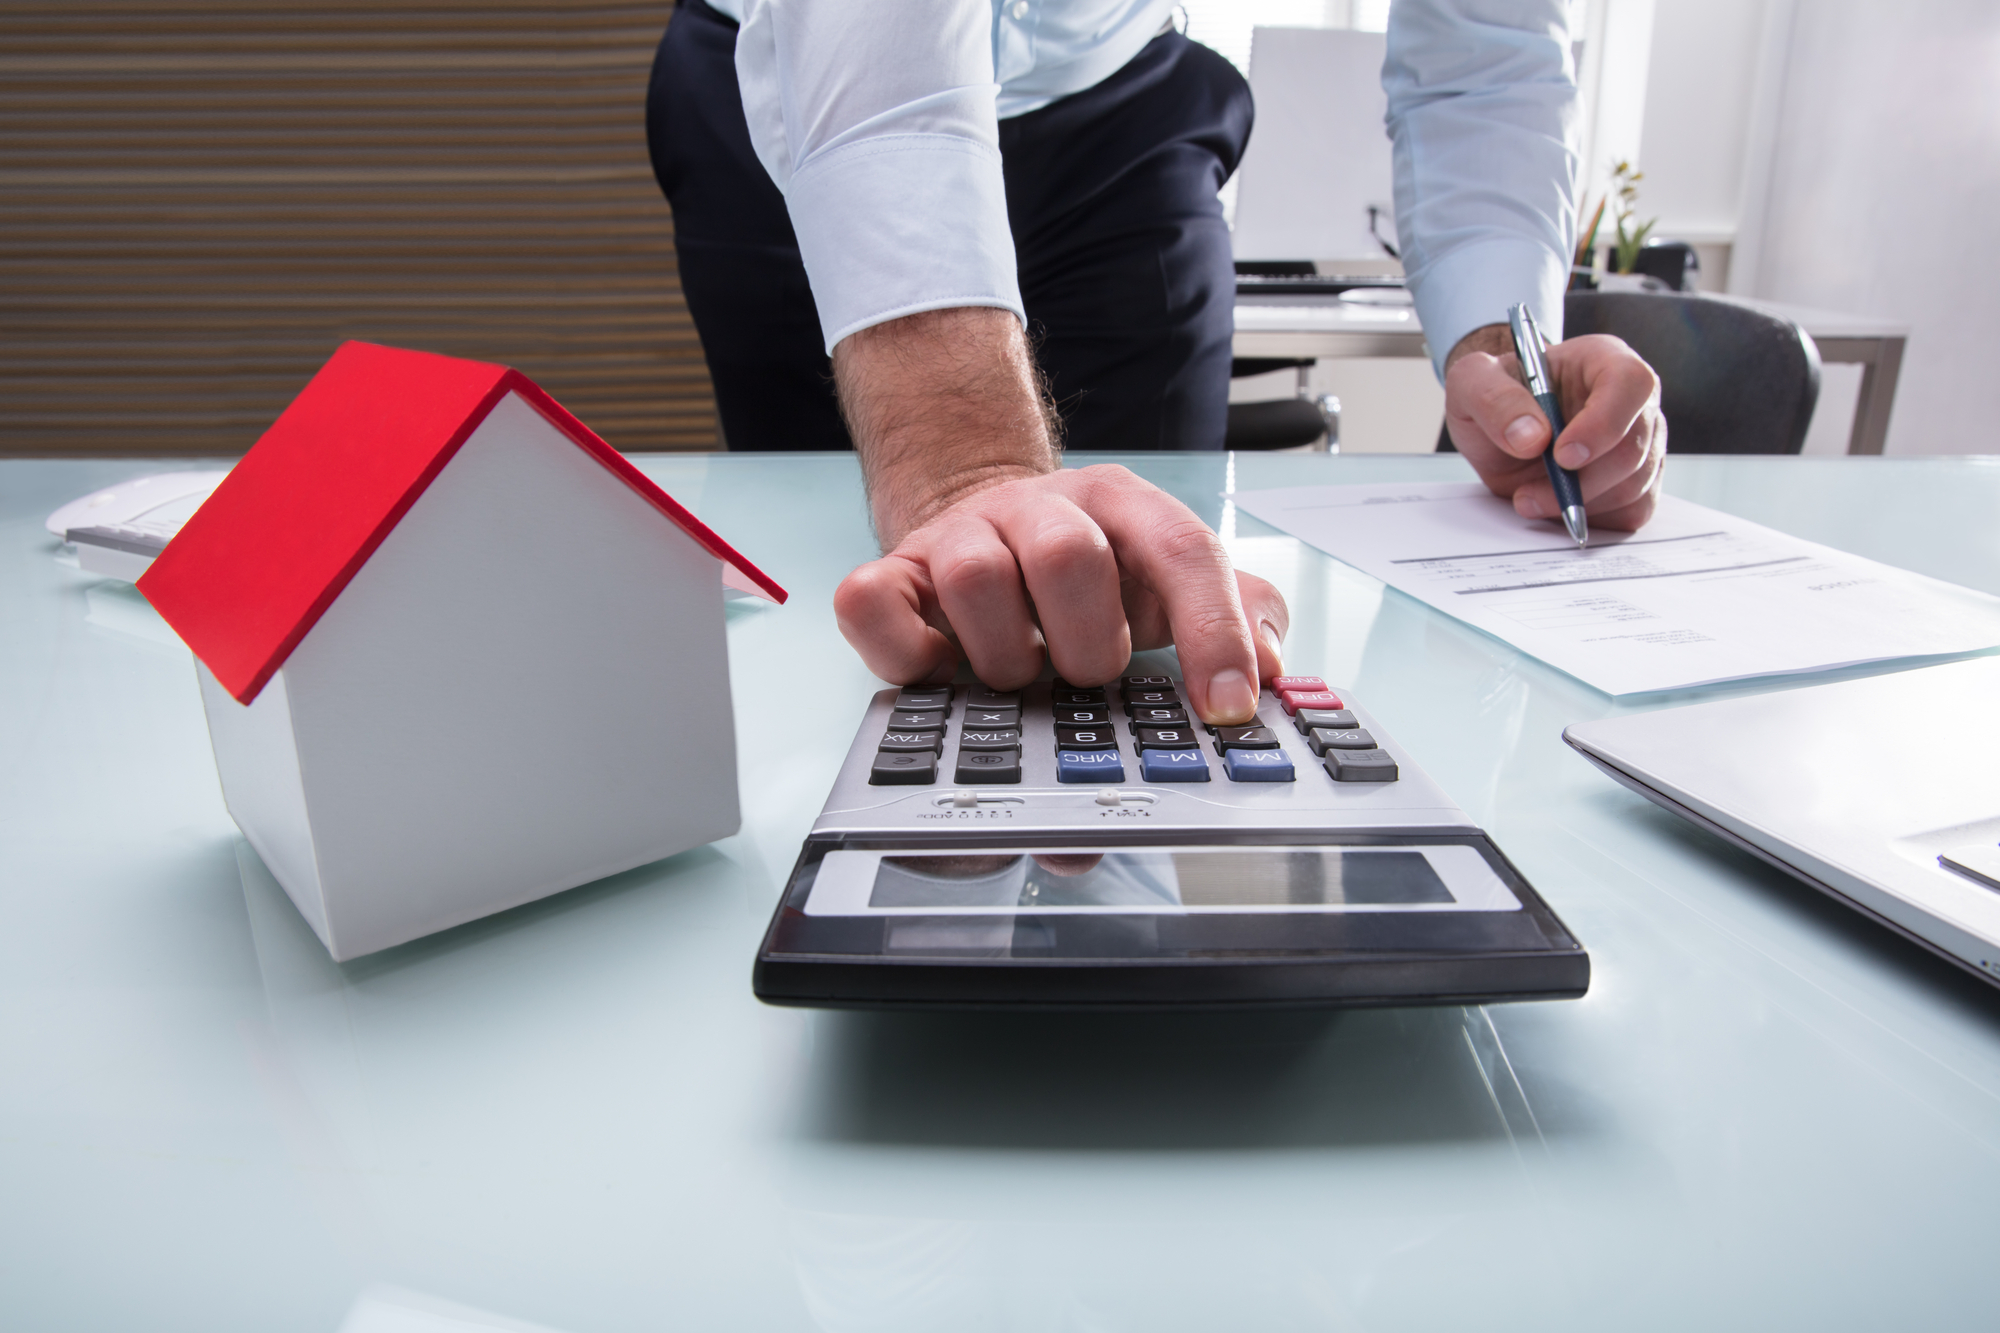 Human Hand Calculating Bill Using Calculator With House Model On Desk